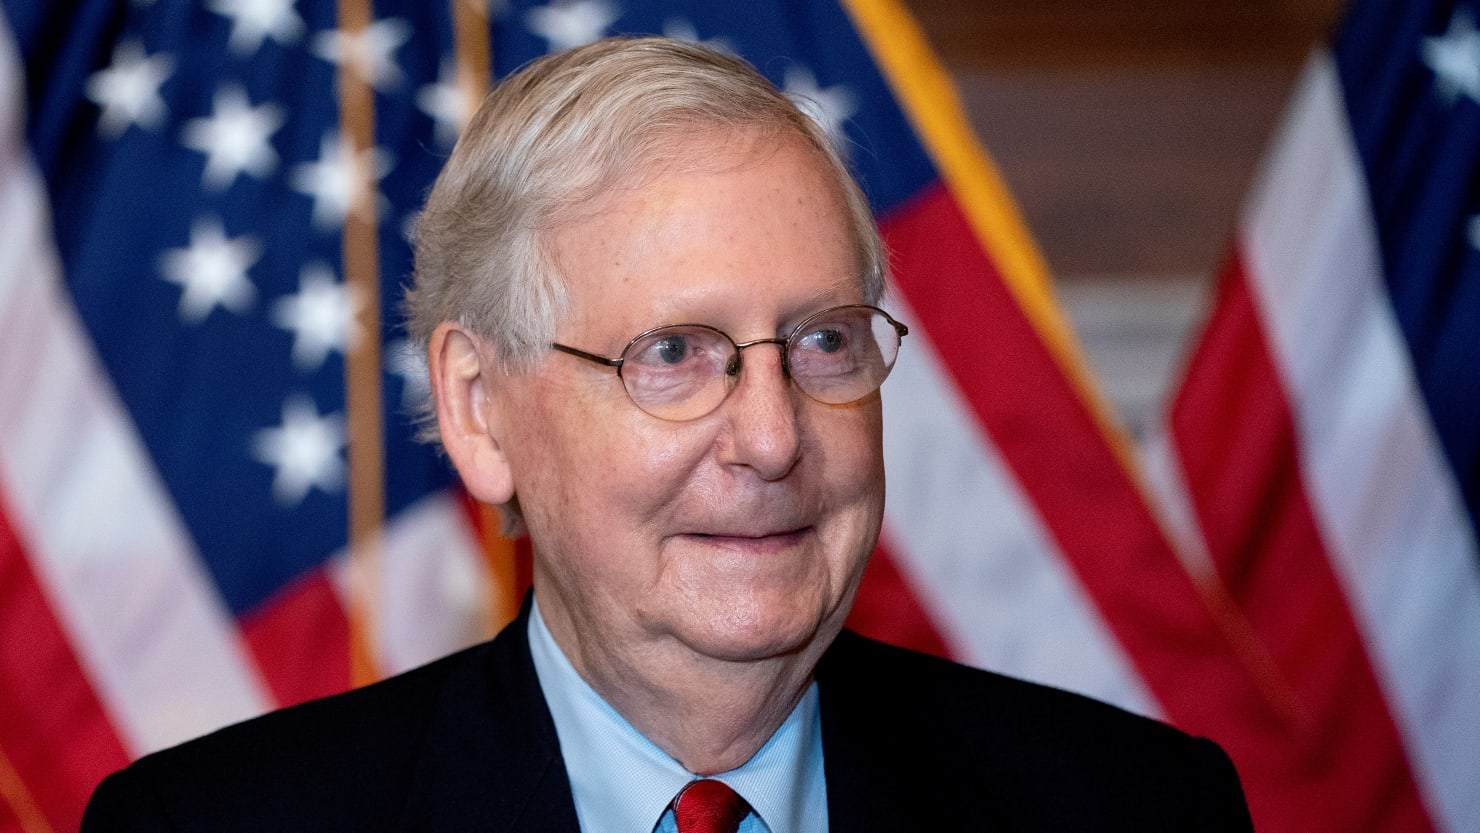 McConnell and Trump Plotted Barrett Nomination on the Night Ginsburg Died, Says Report